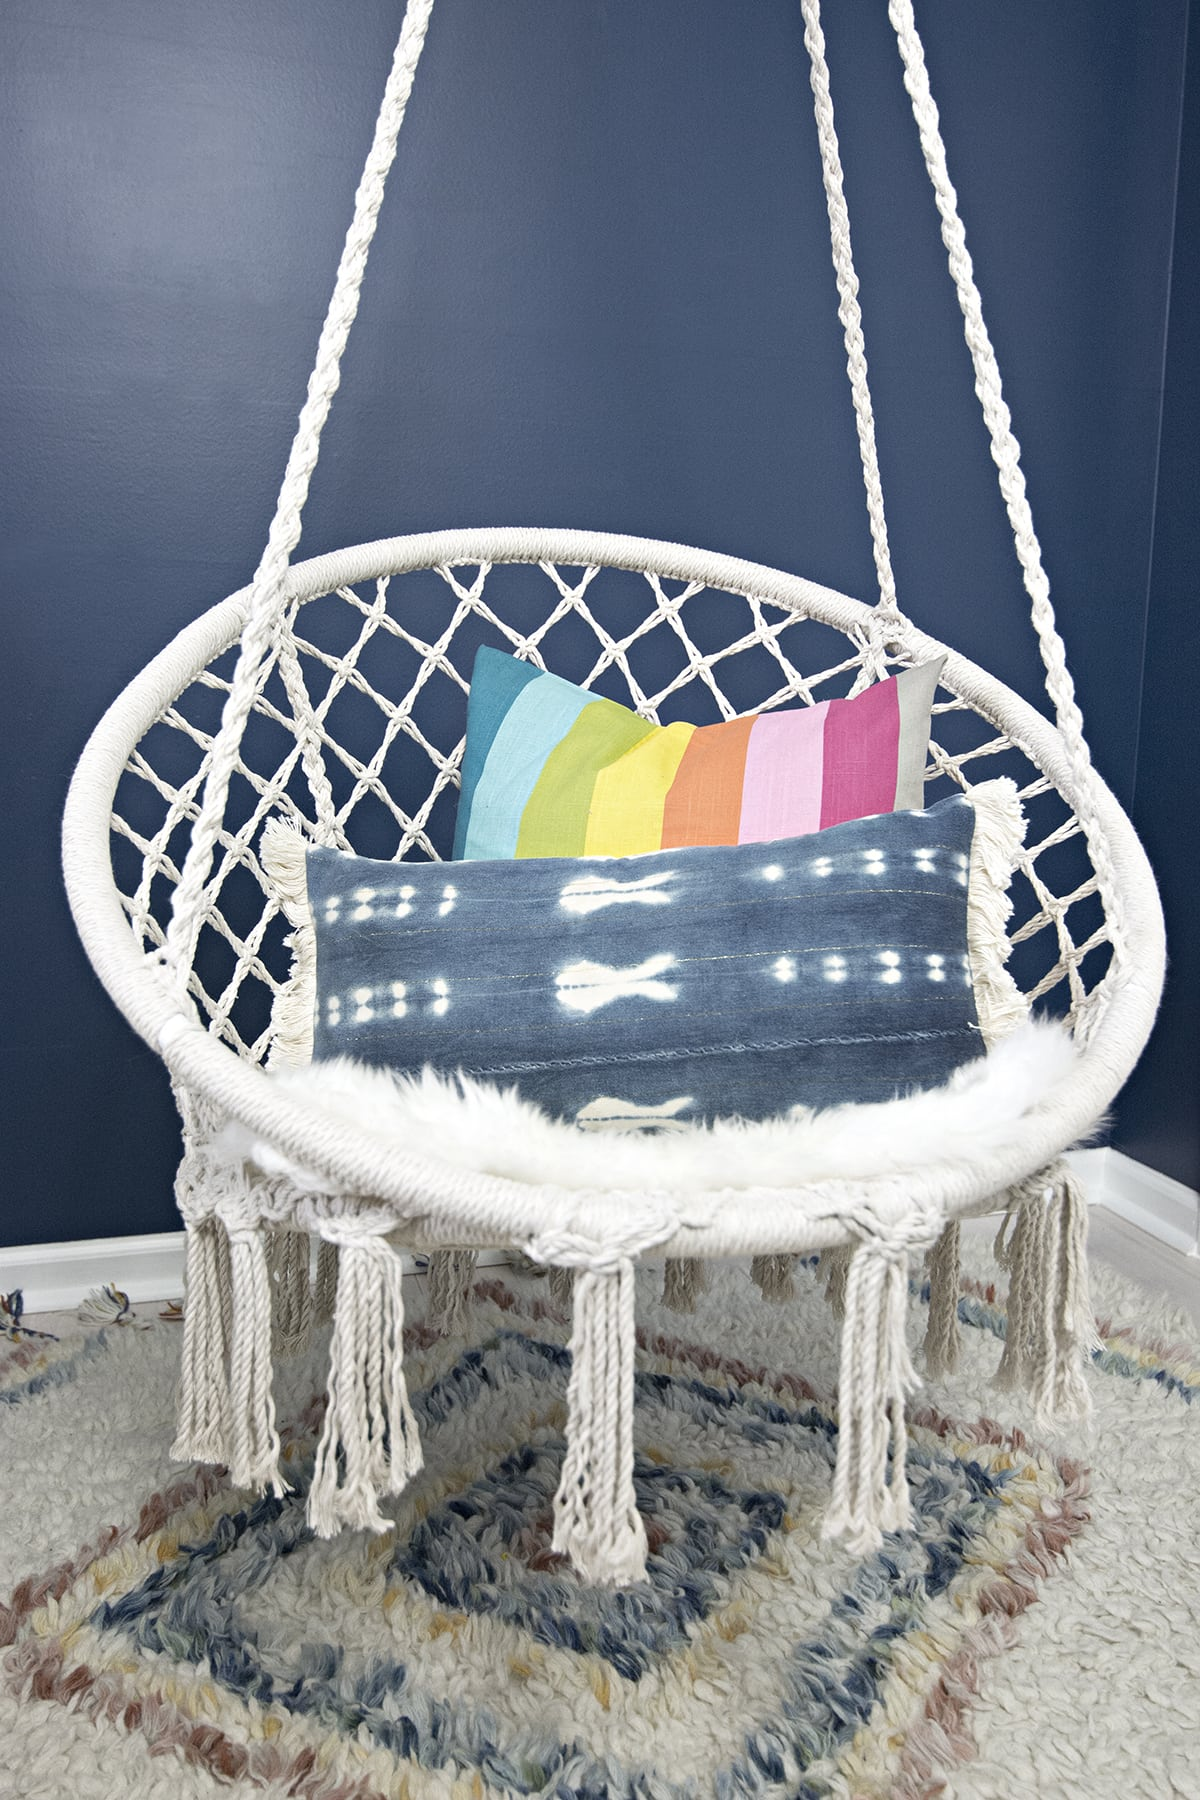 Our New Hanging Macrame Hammock Chair Cuckoo4design